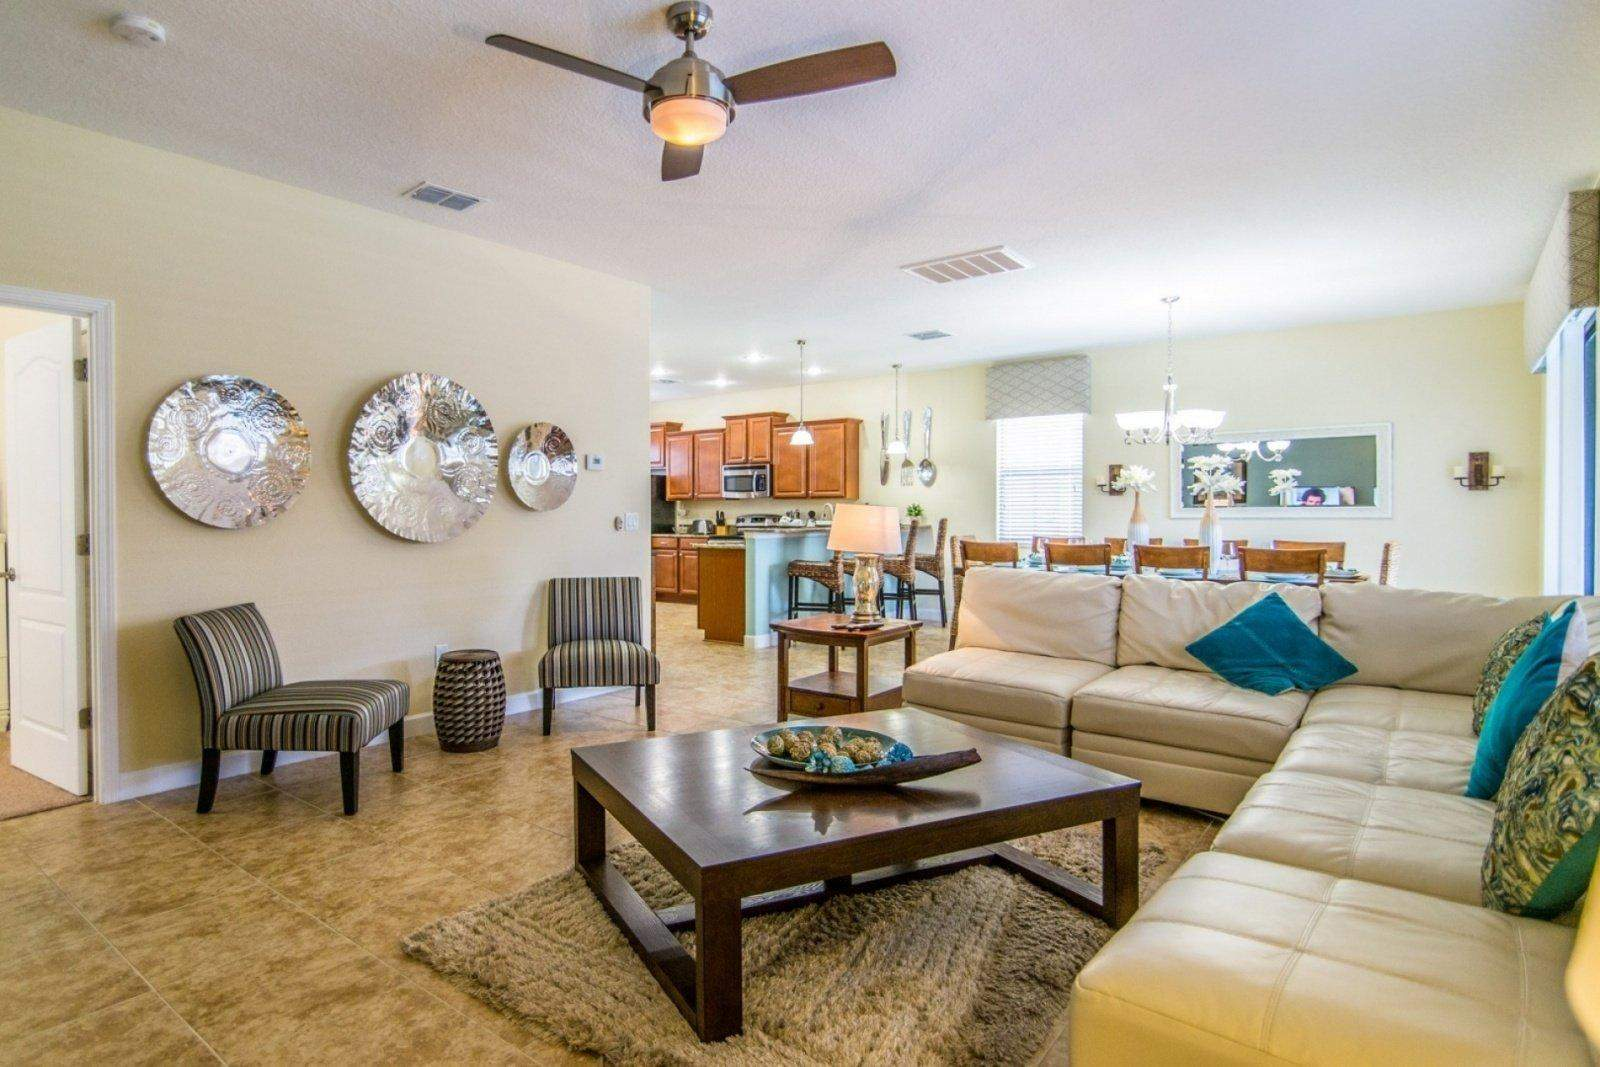 28 vacation rental interior design and for How to decorate a vacation rental home